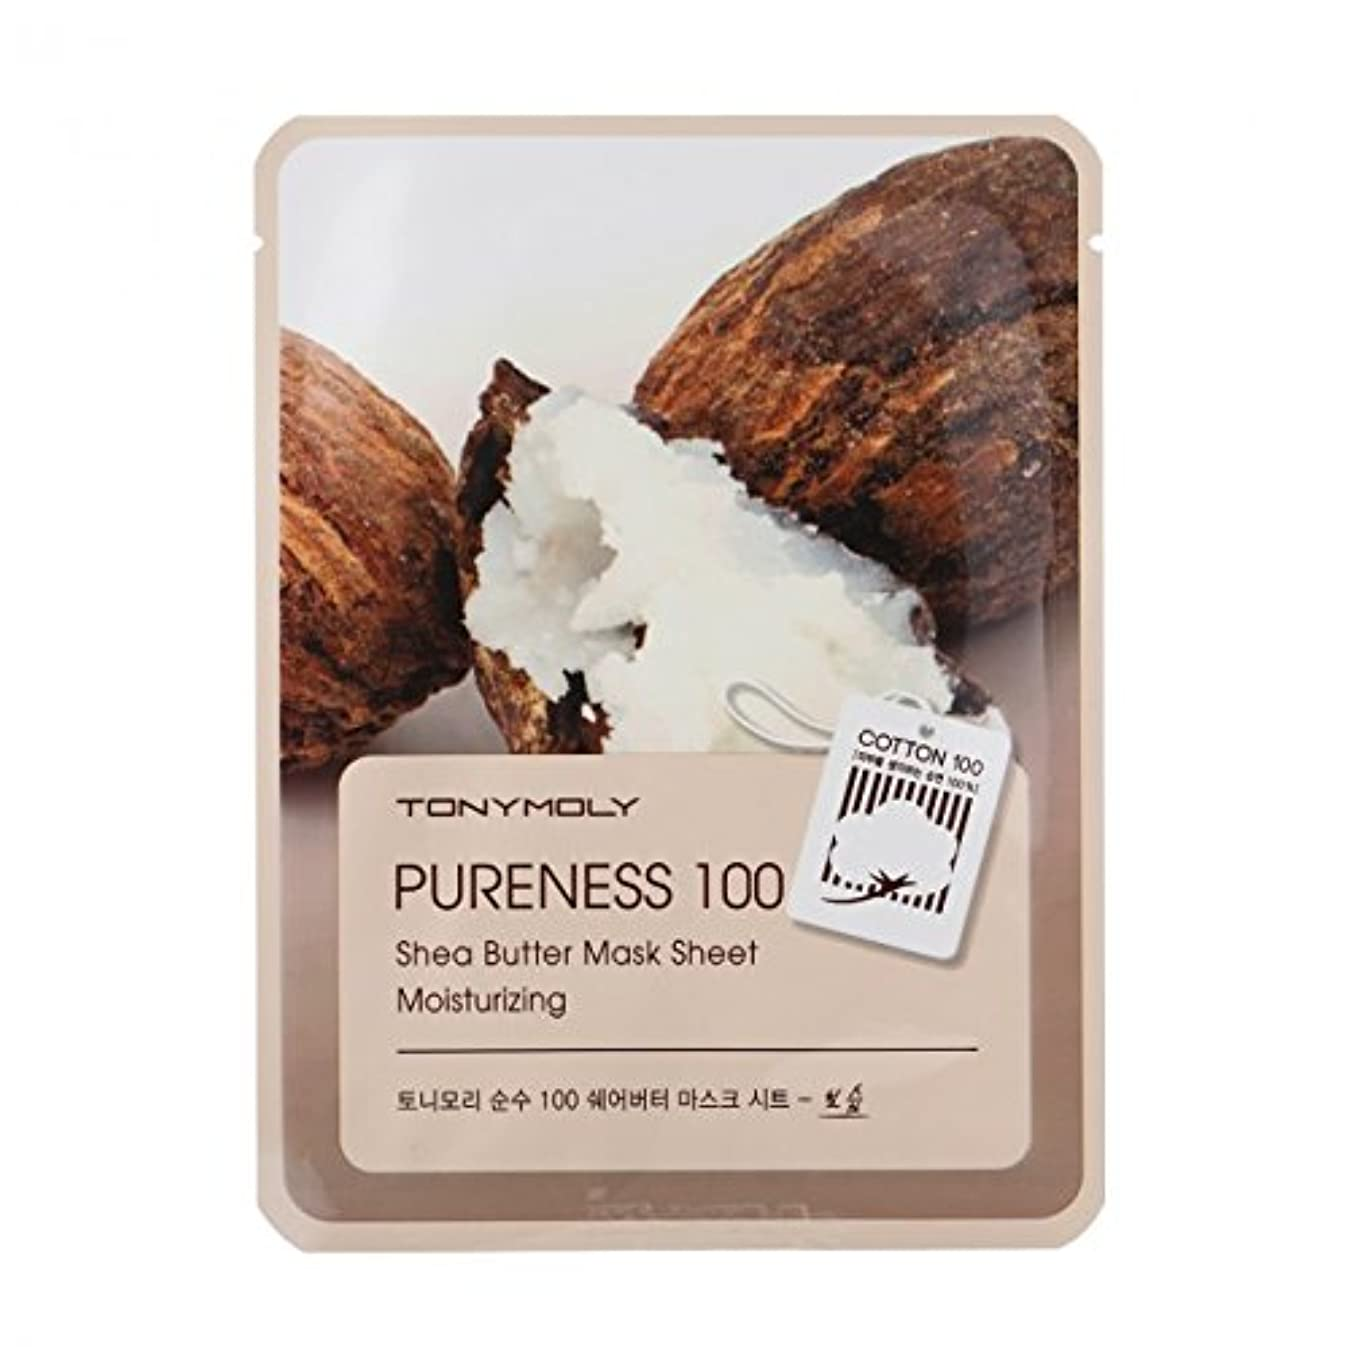 (6 Pack) TONYMOLY Pureness 100 Shea Butter Mask Sheet Moisturizing (並行輸入品)